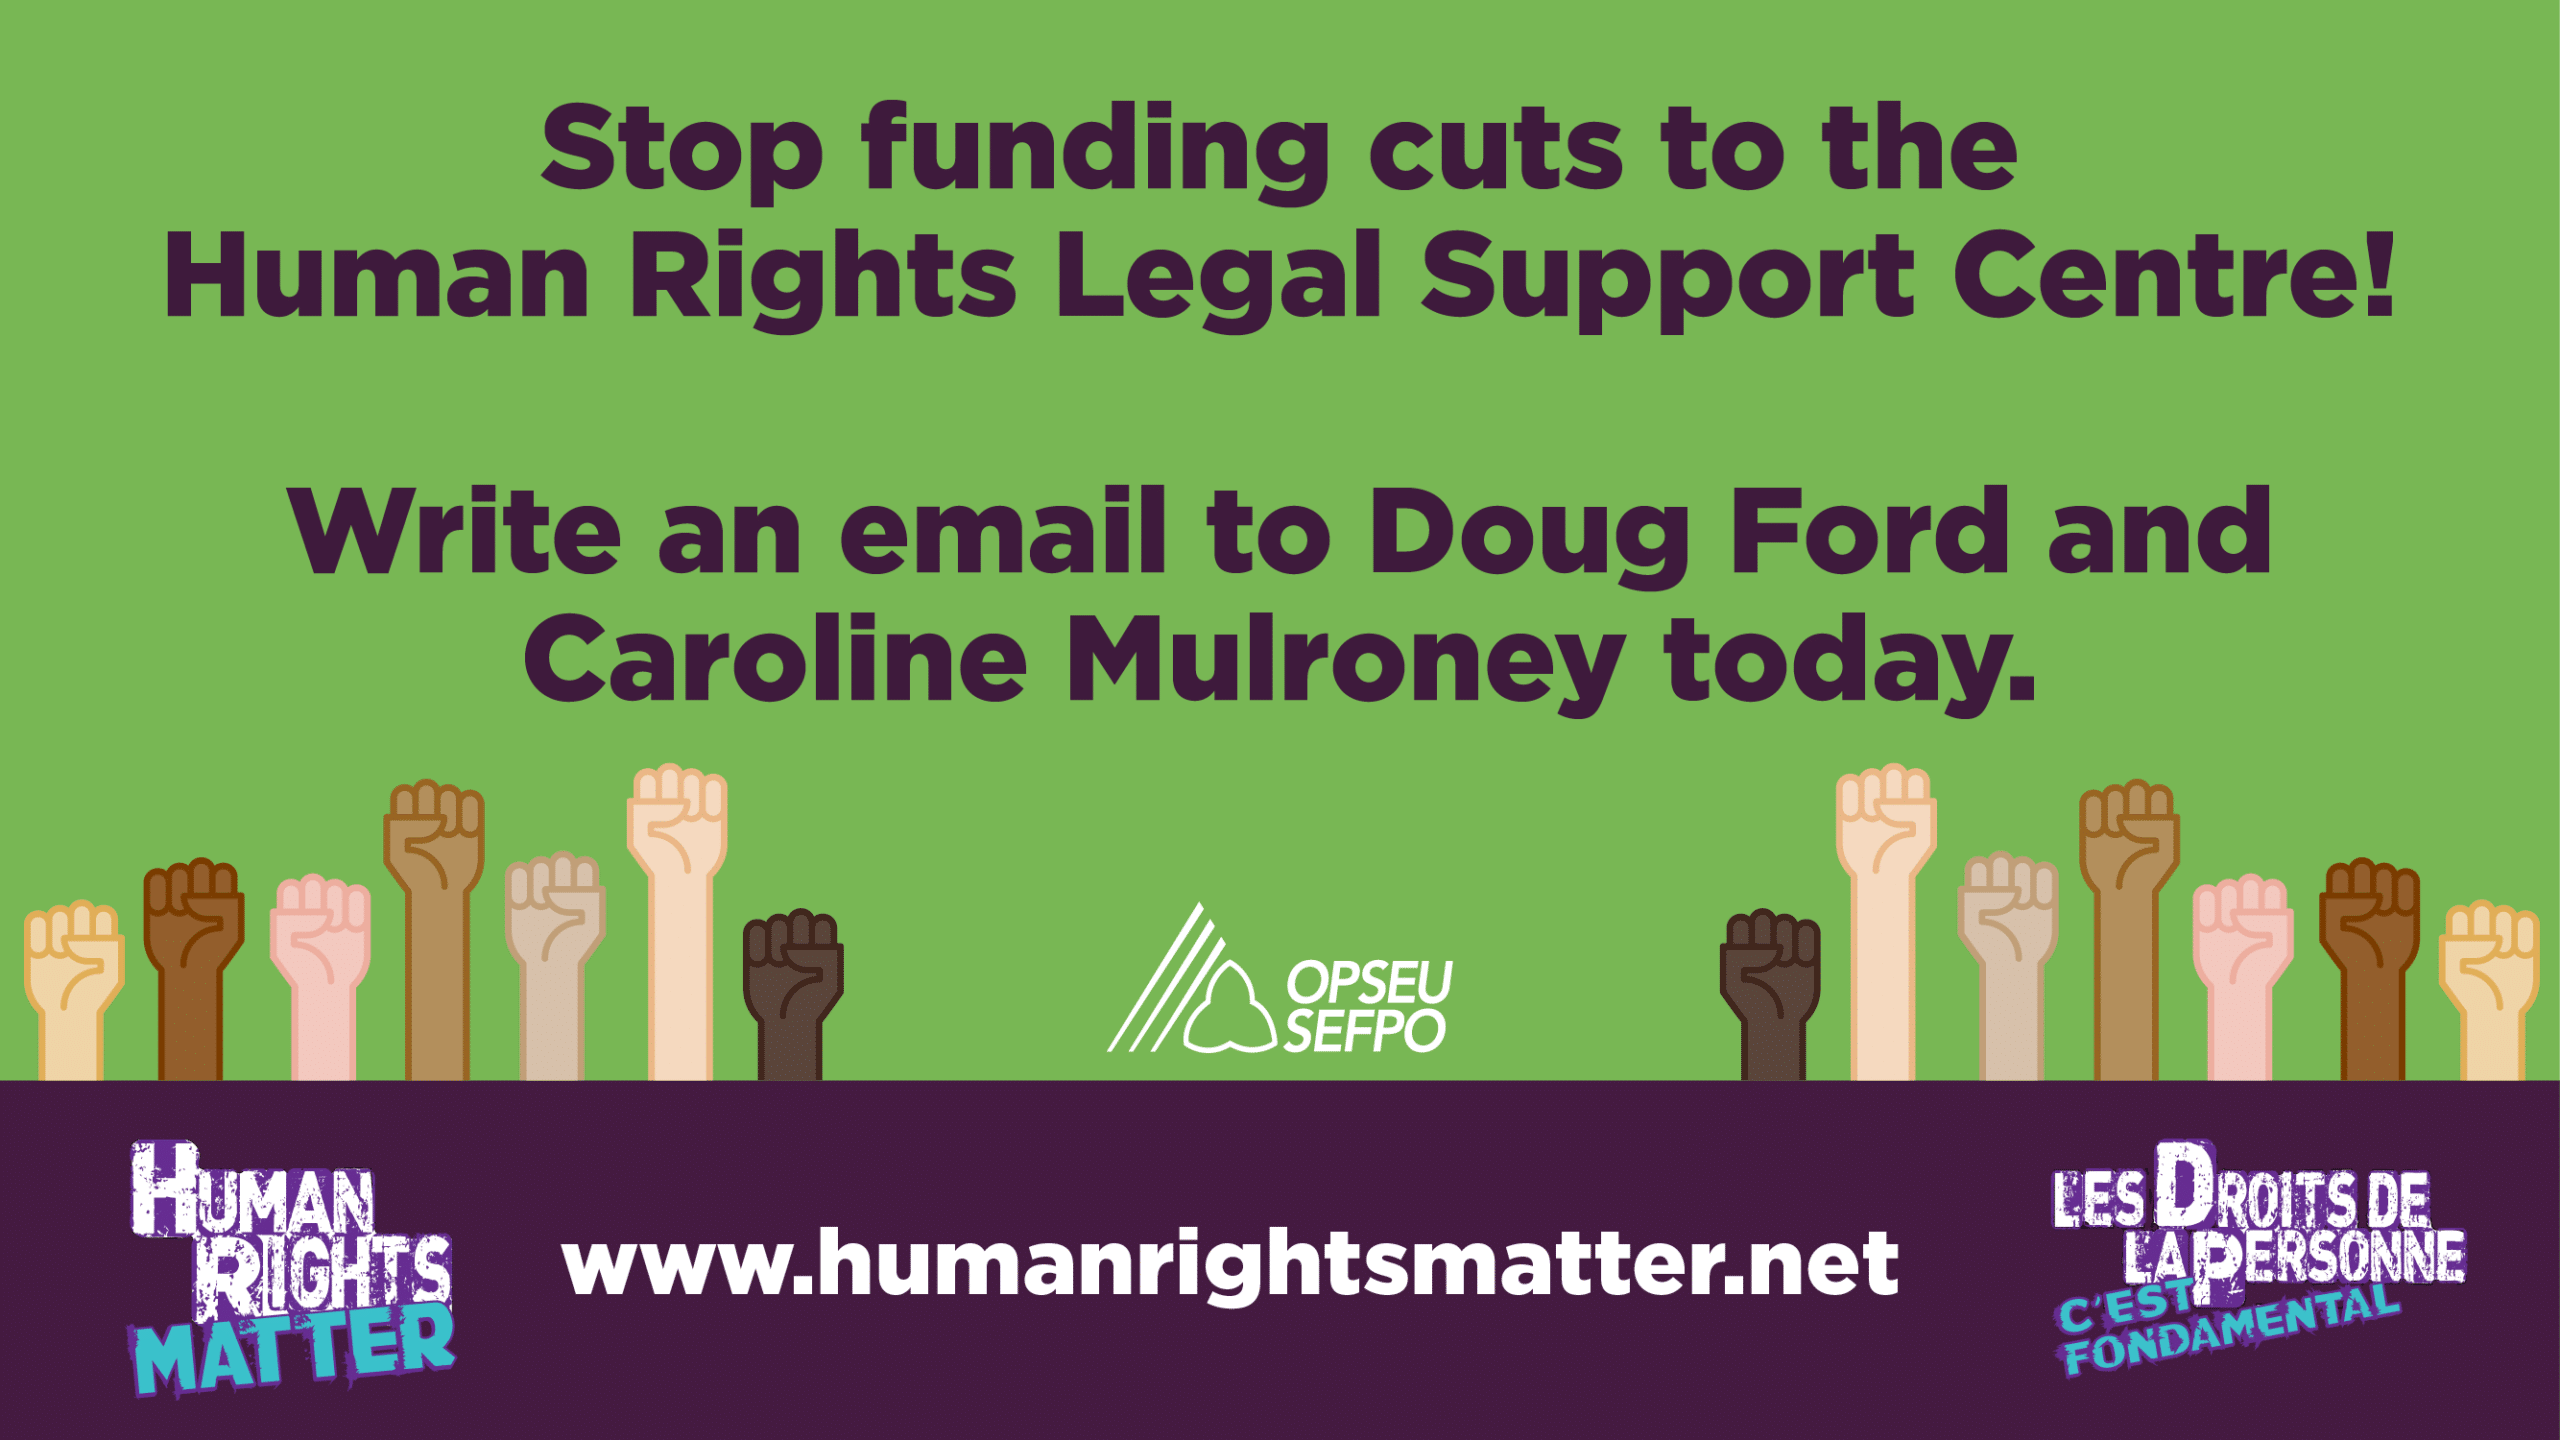 Stop funding cuts to the Human Rights Legal Support Centre! Write an email to Doug Ford and Caroline Mulroney today.